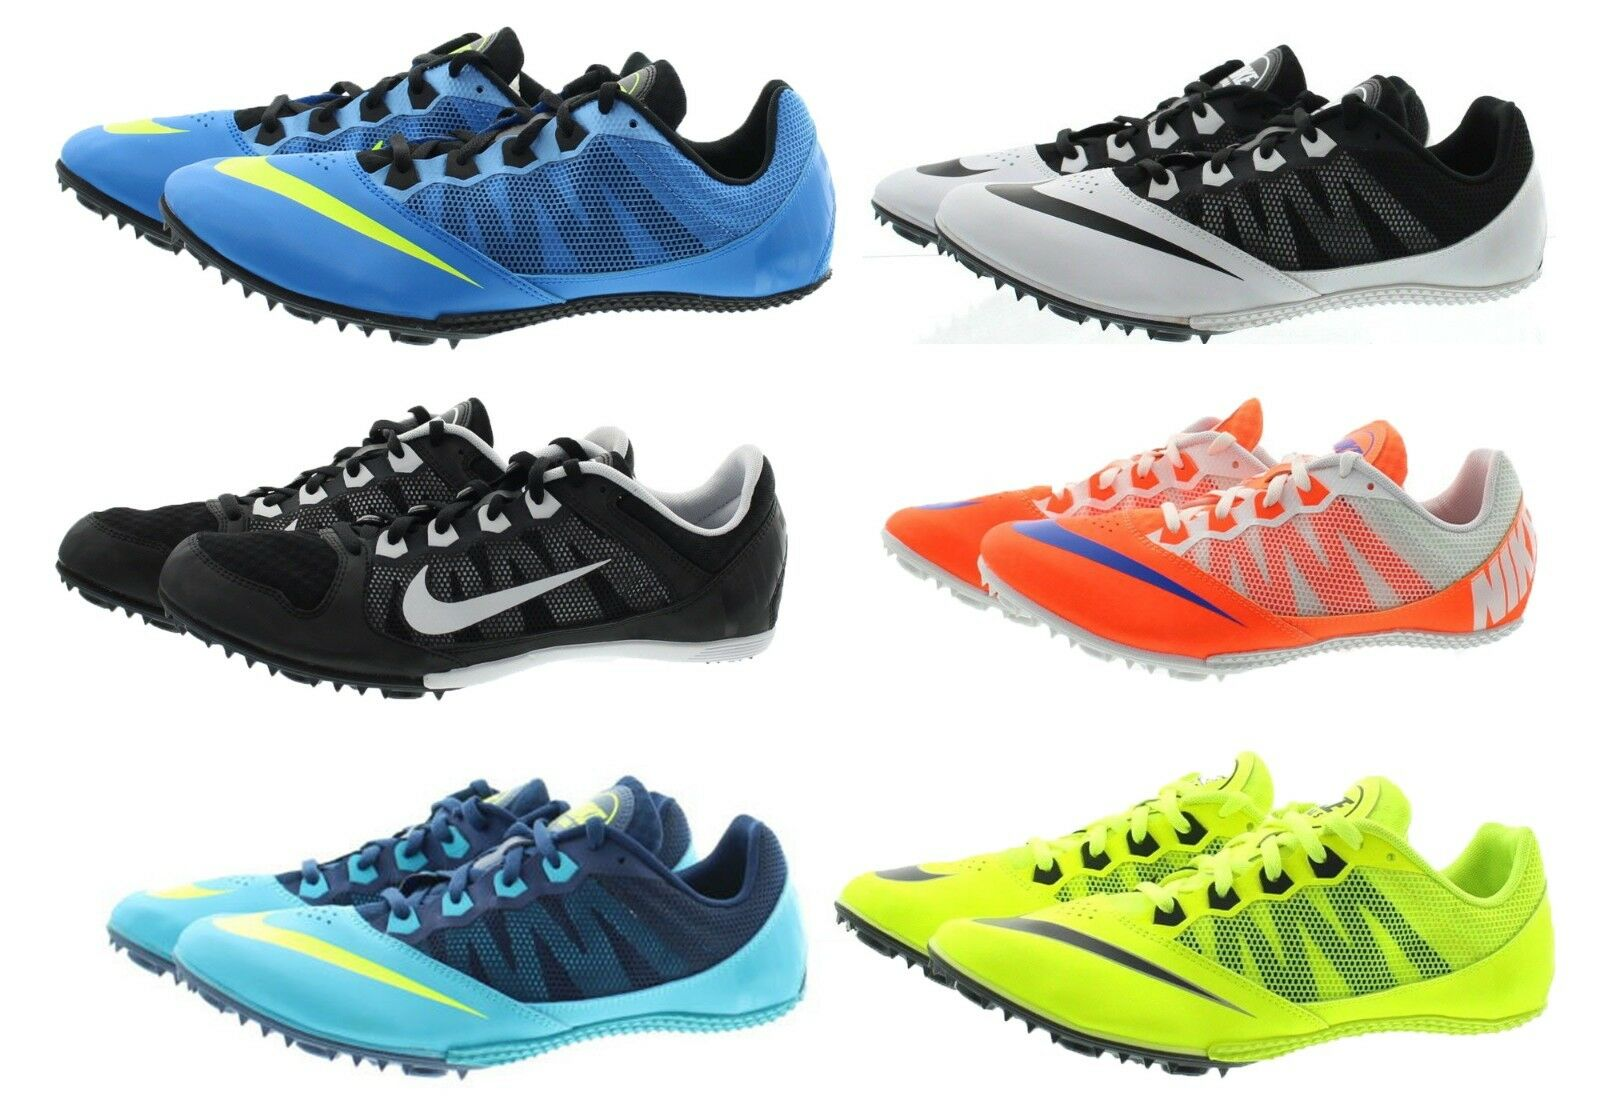 Nike 616313 Men's Zoom Rival S 7 Track Field Spikes Racing Sprinting Cleats